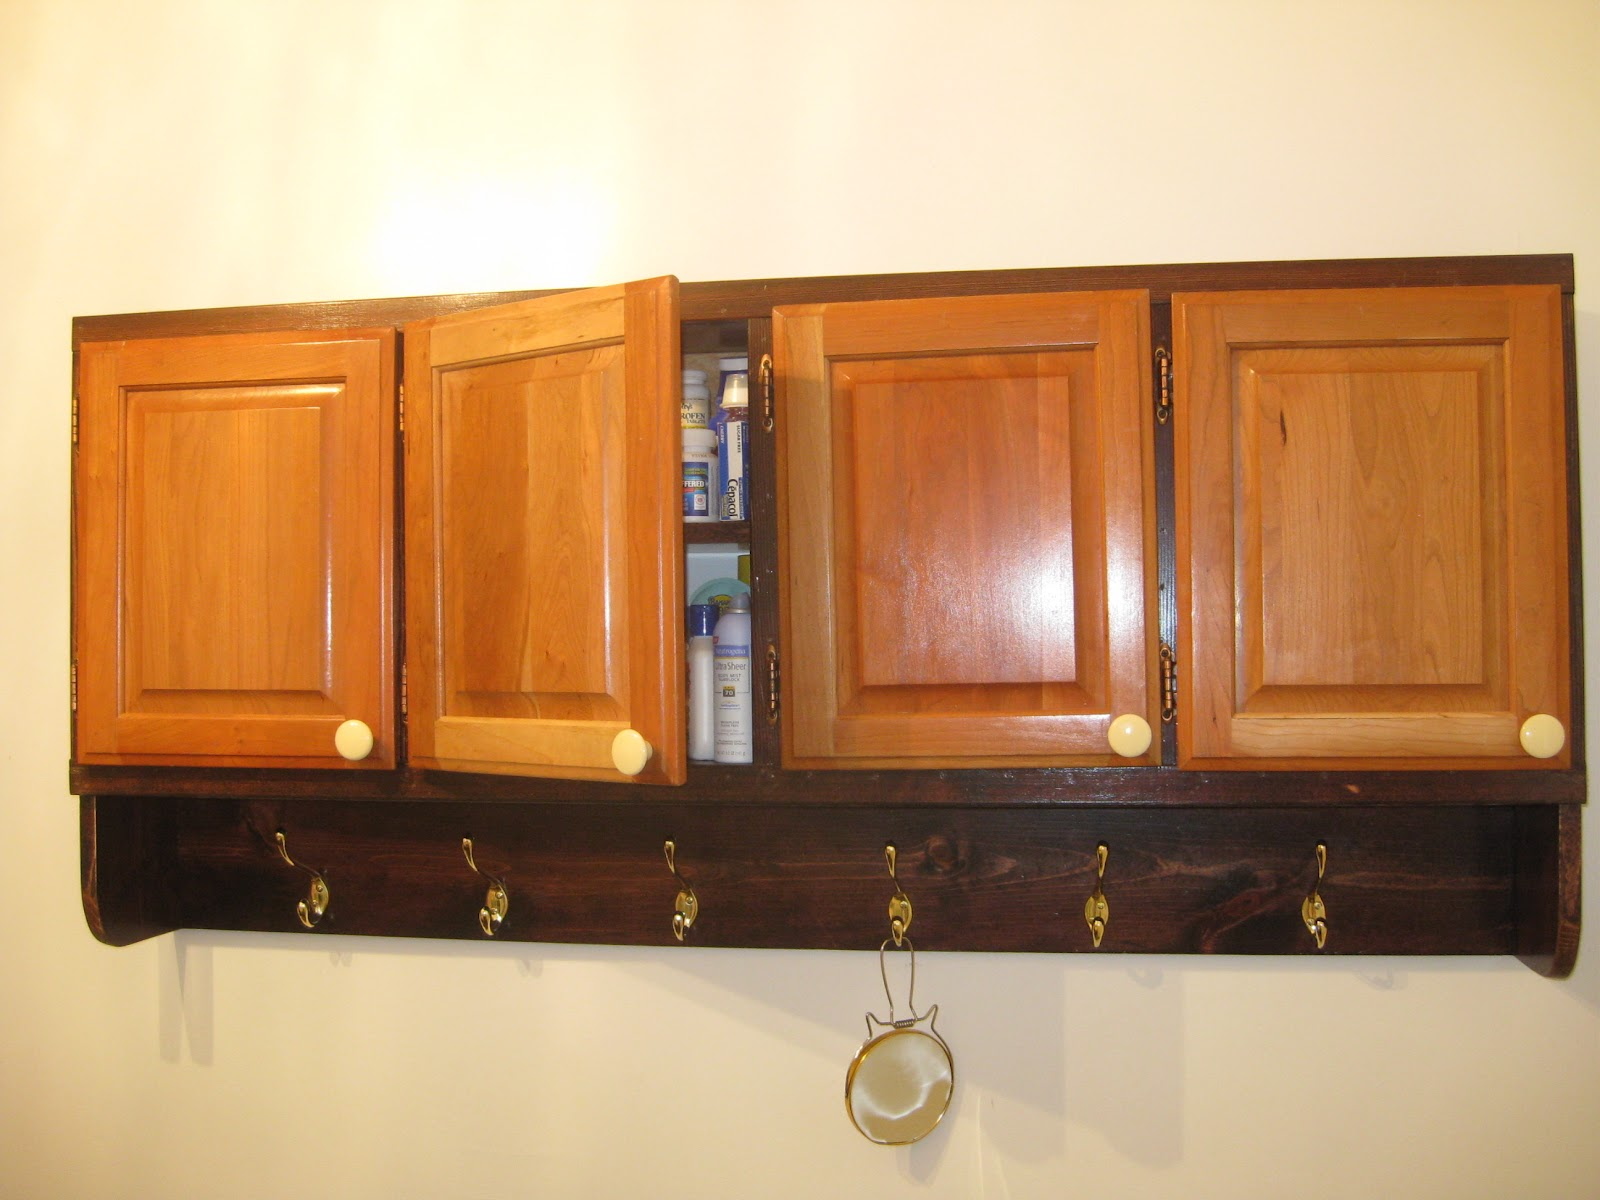 Life in old spokane home workshop for simple woodworking - Bathroom wall cabinet with towel bar ...